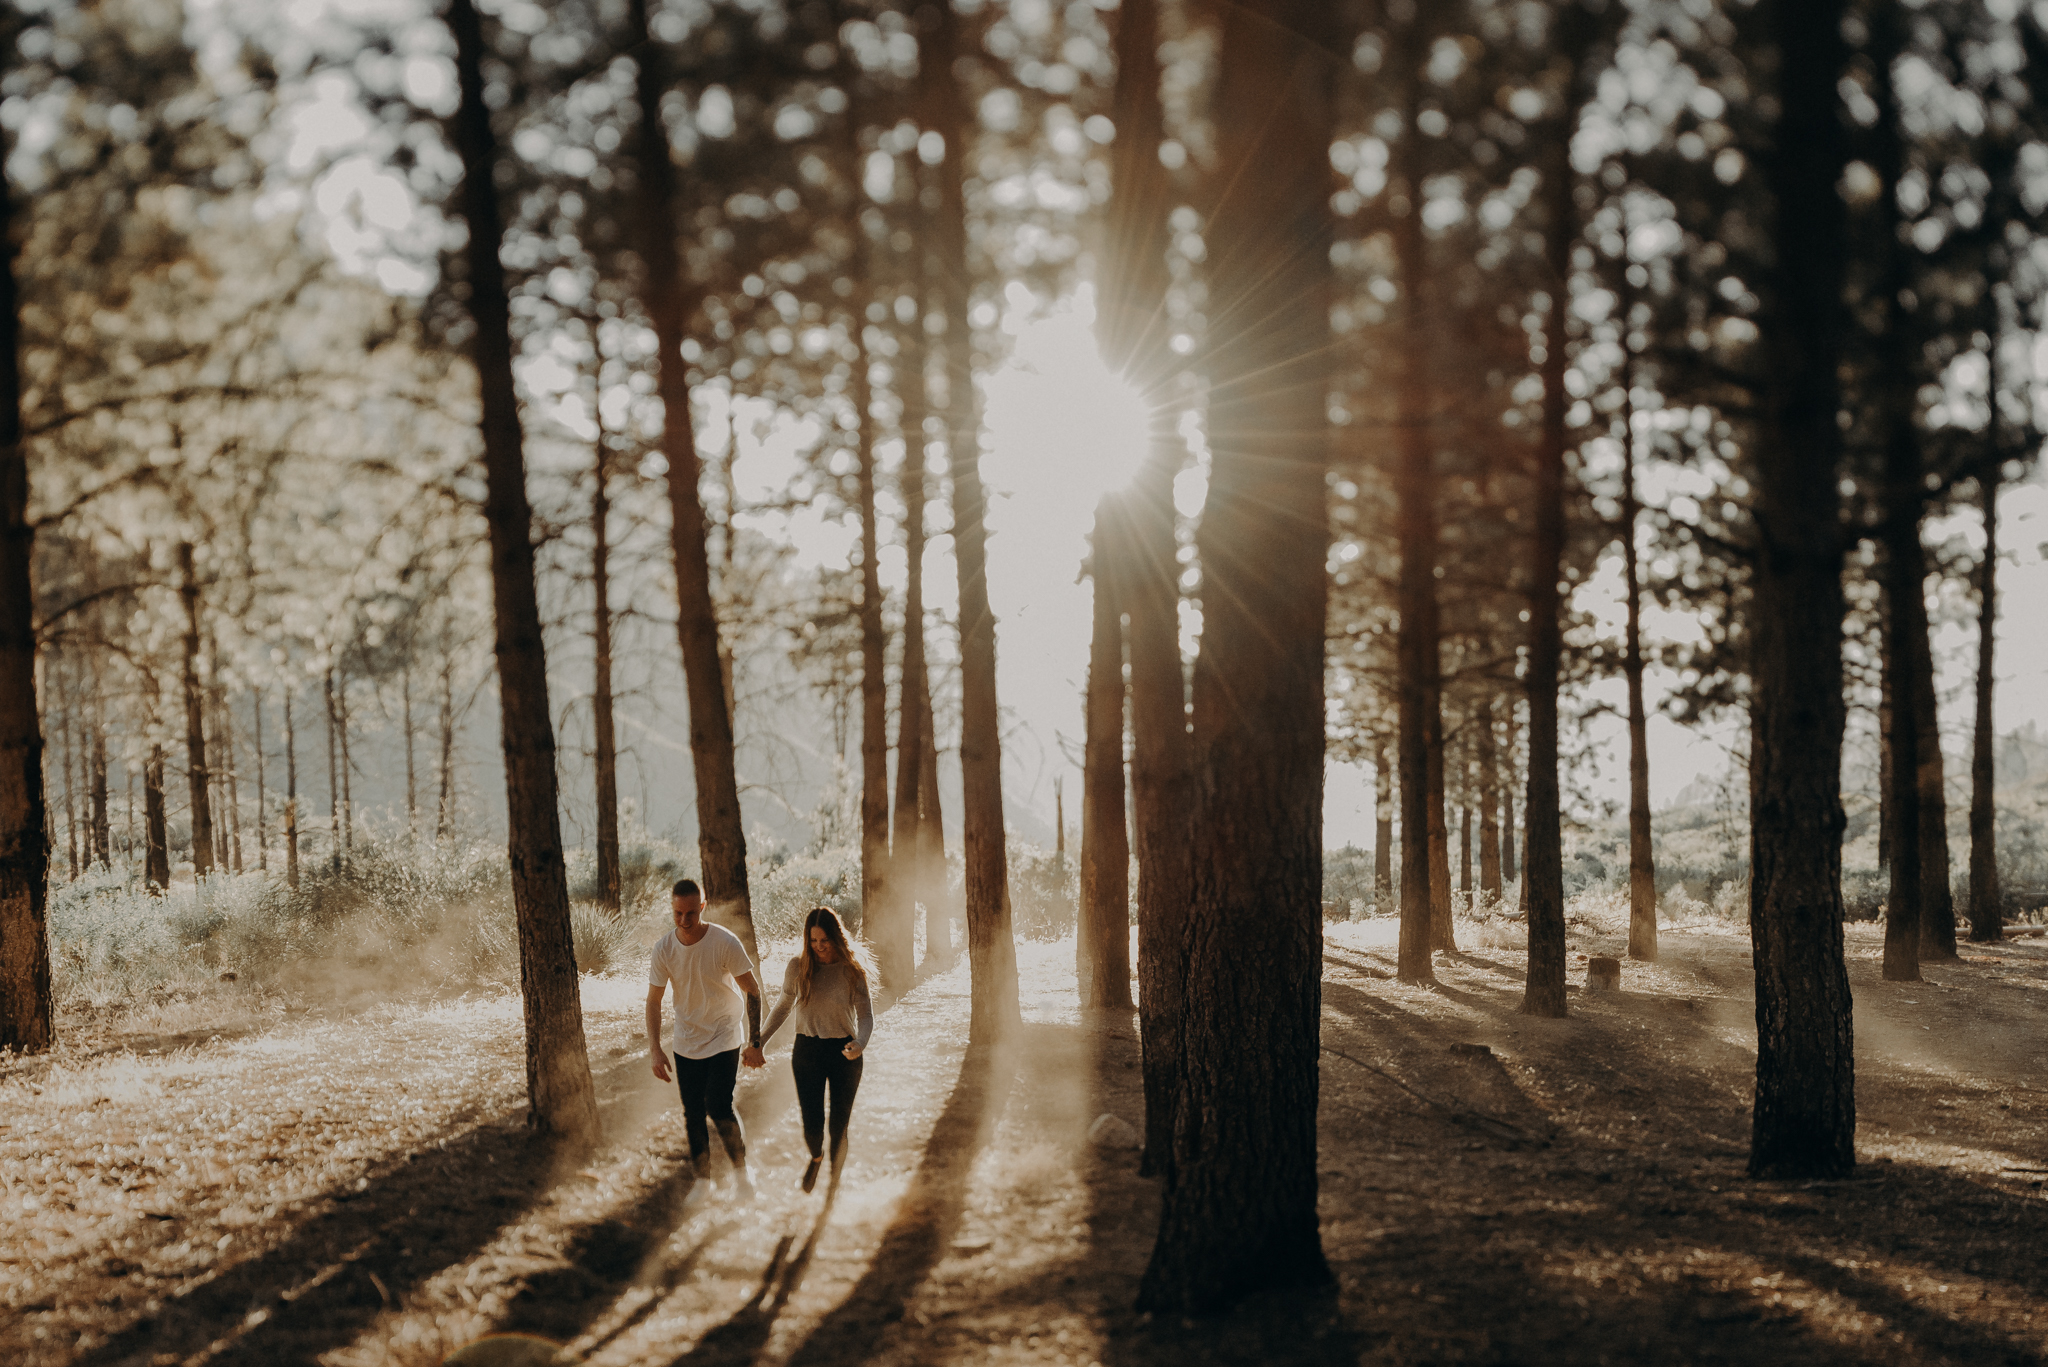 Isaiah + Taylor Photography - Los Angeles Forest Engagement, Laid-back Wedding Photographer-078.jpg